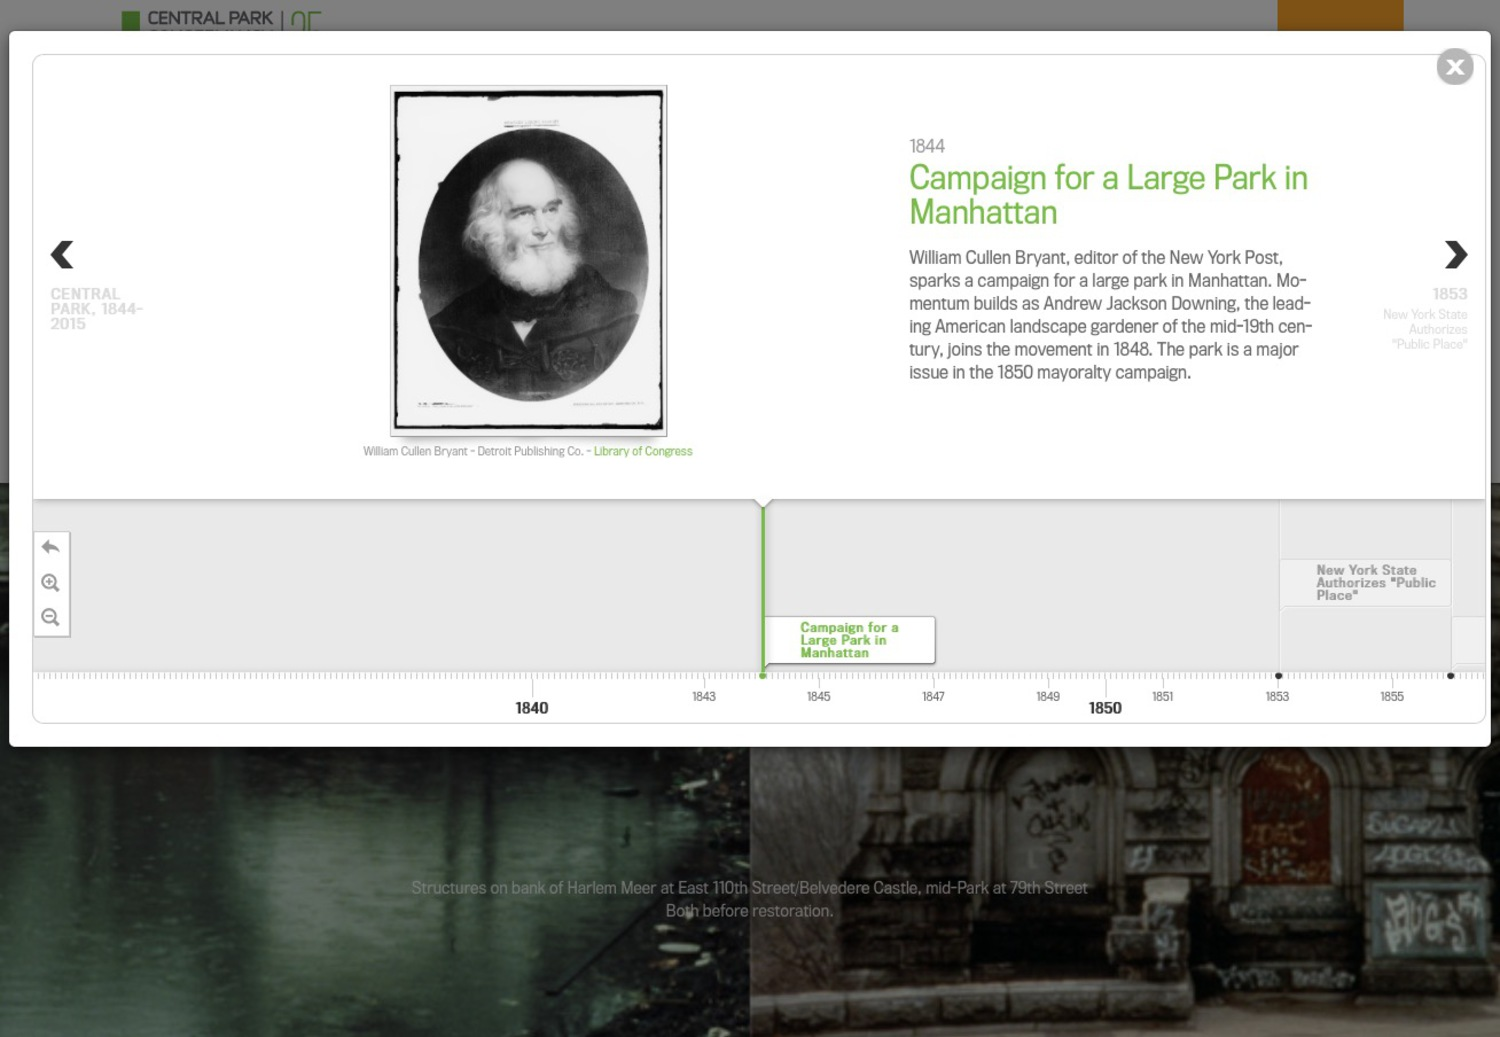 Central Park Conservancy's Interactive Timeline, 2015